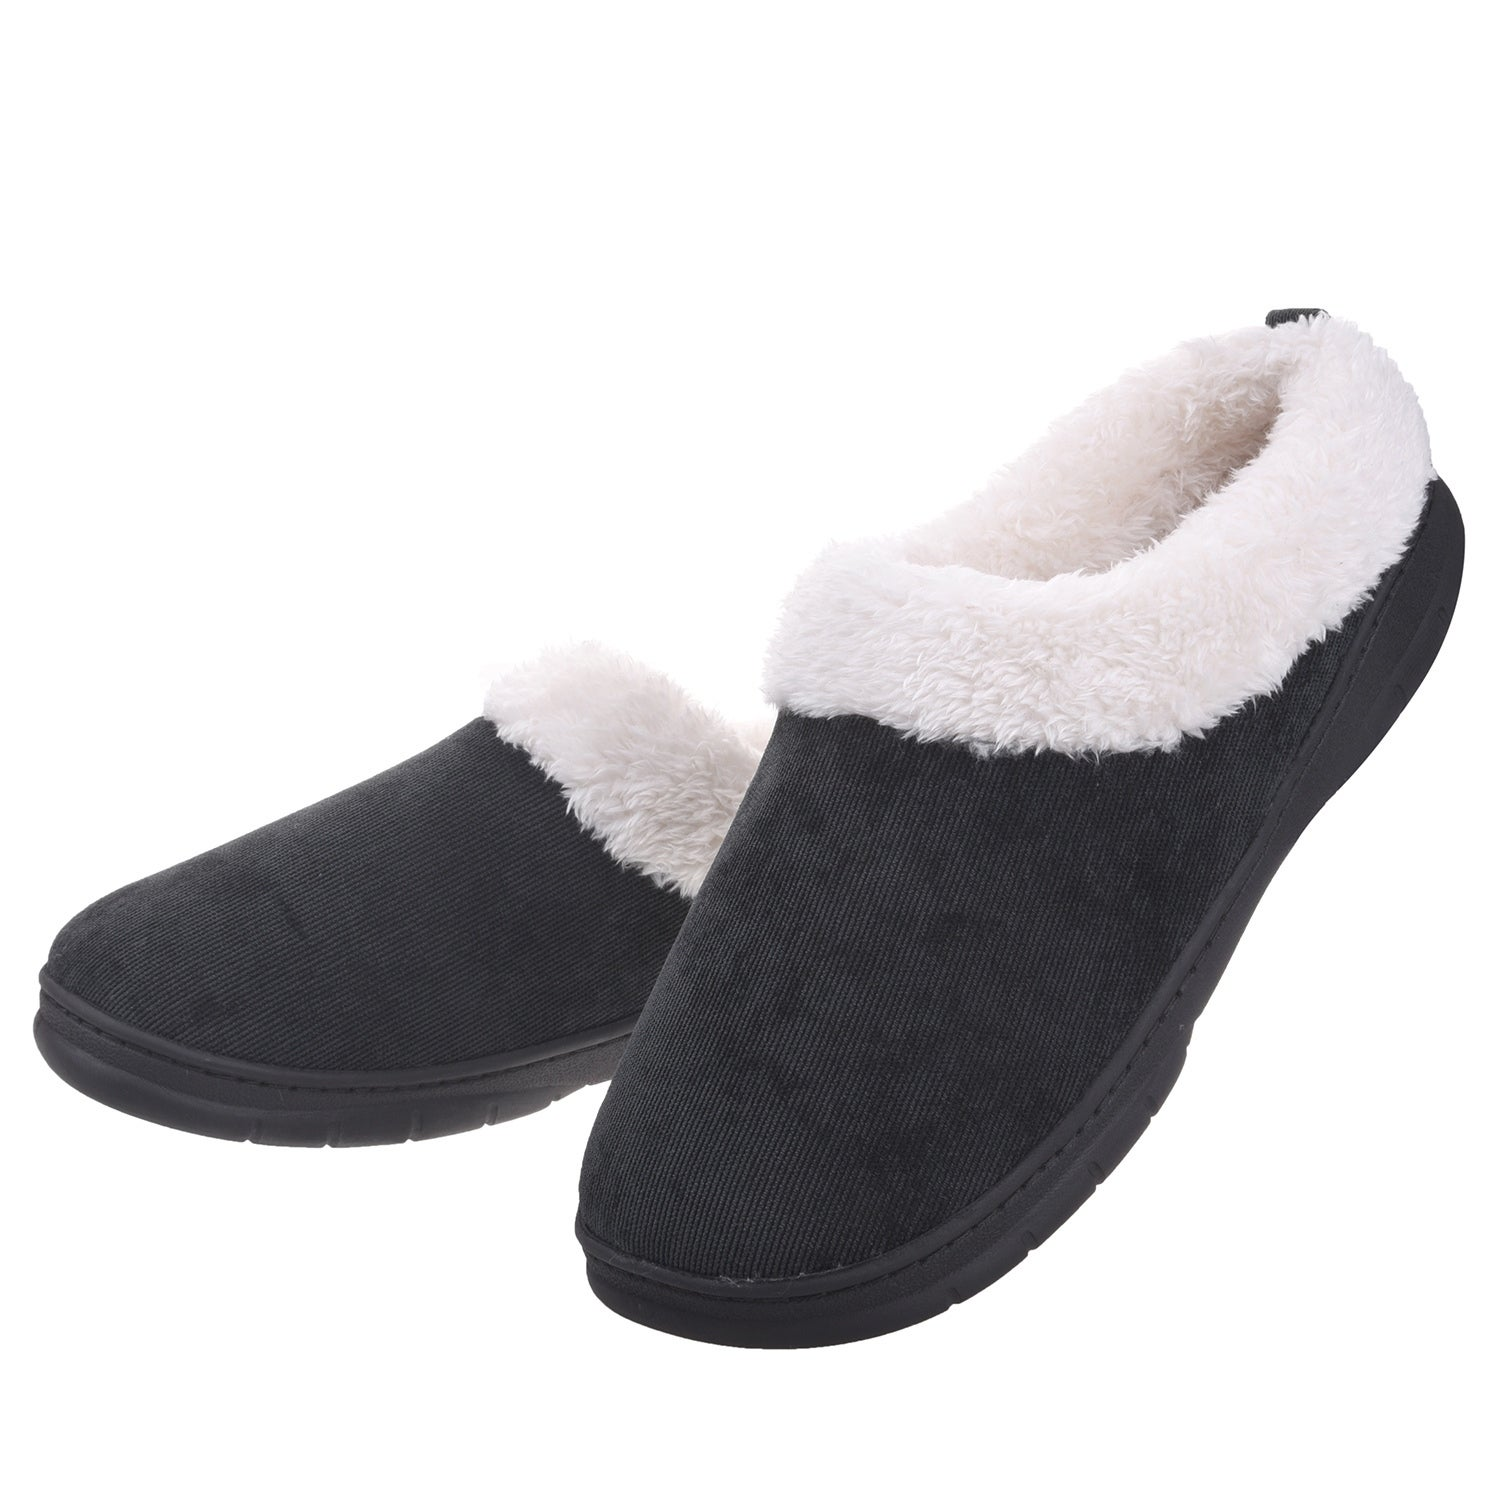 66f9895312ba Buy Size 14 Men s Slippers Online at Overstock